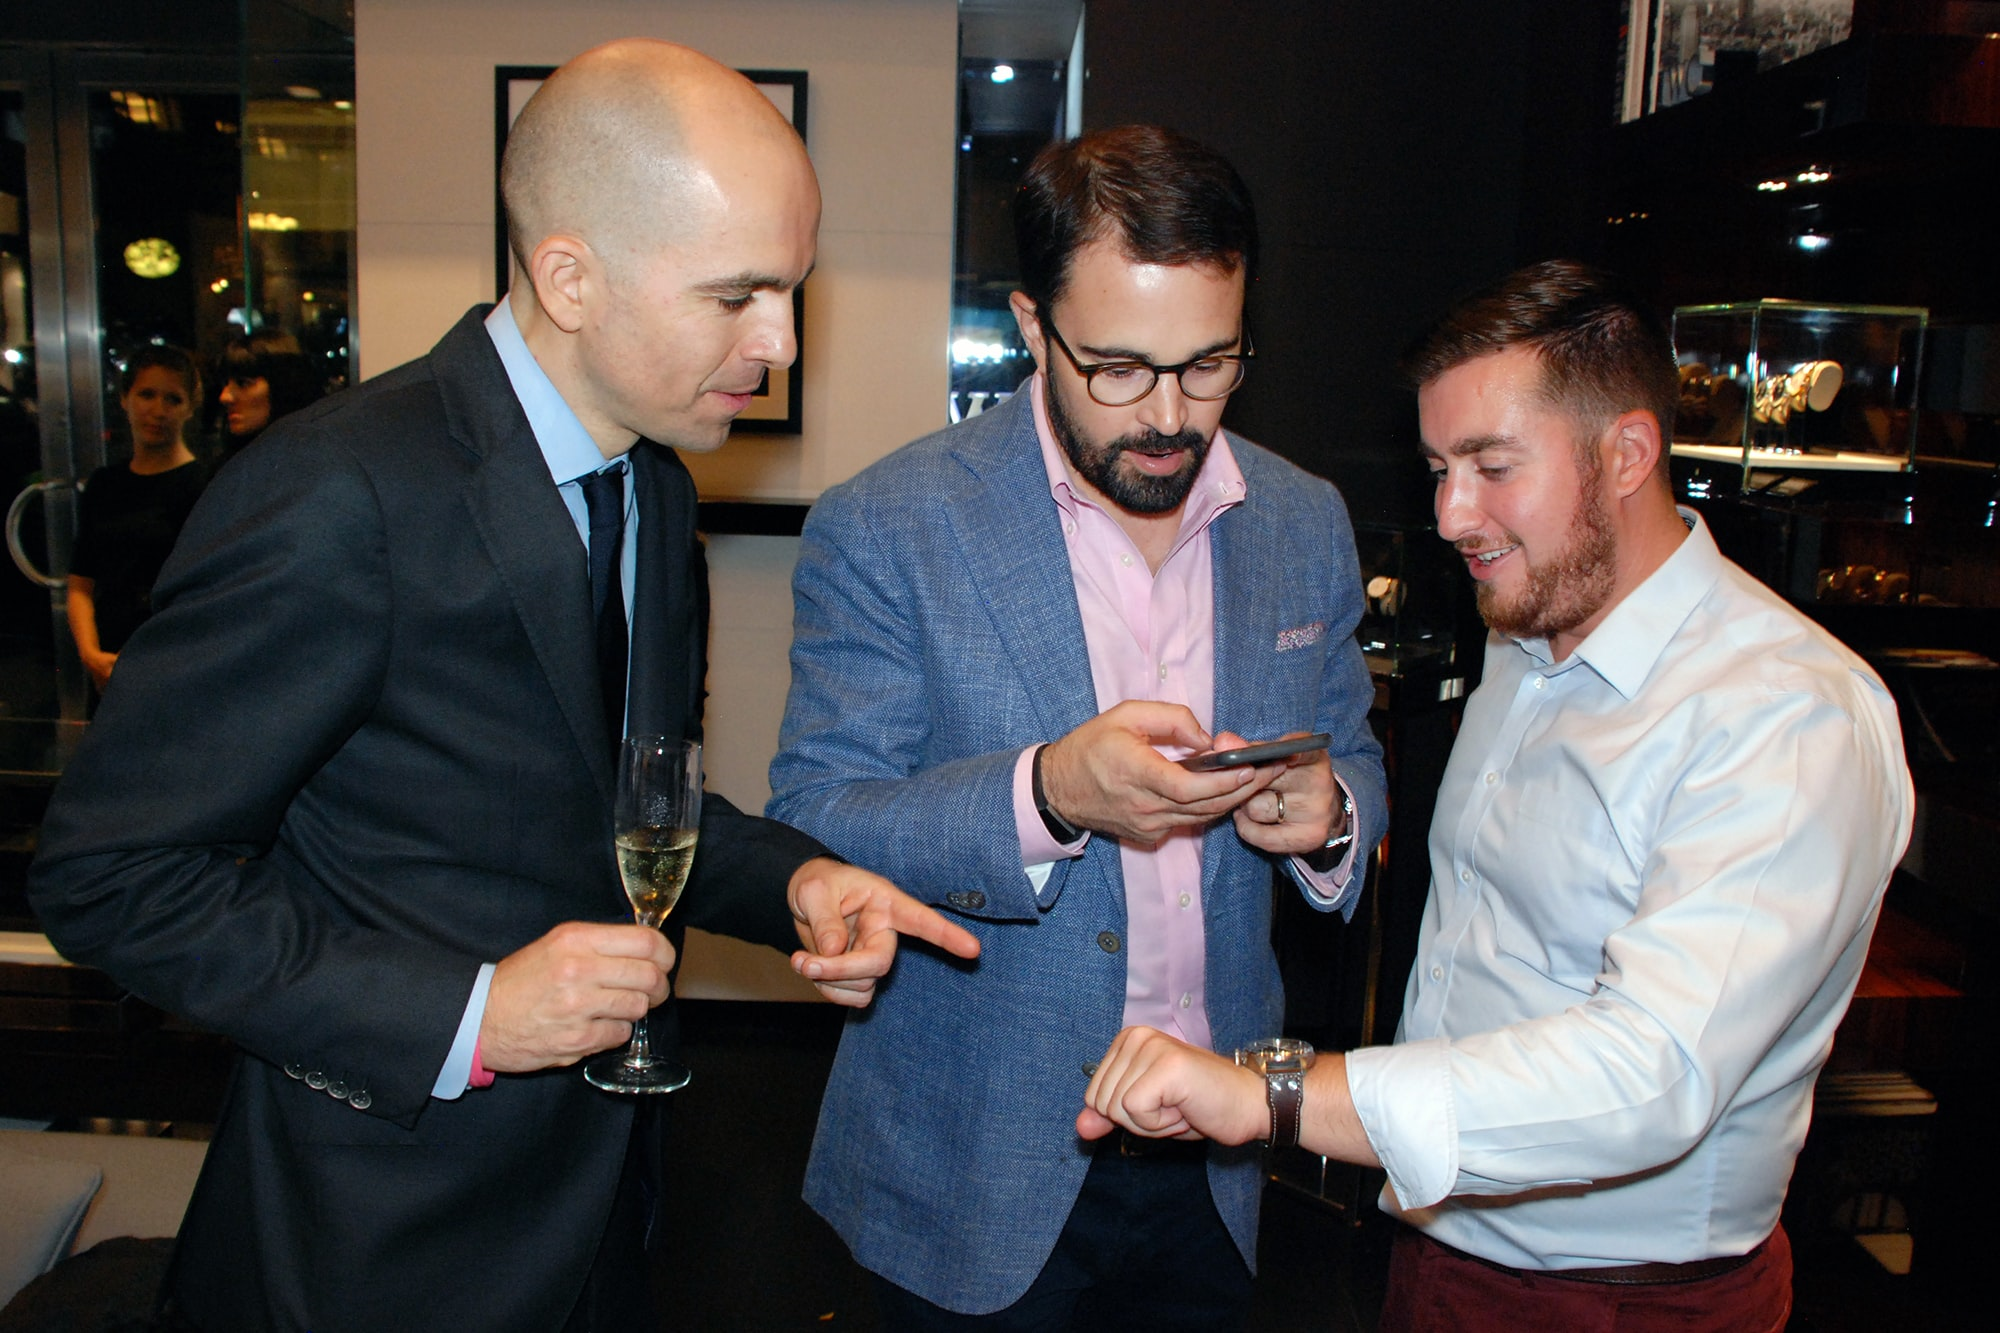 Photo Report: HODINKEE And IWC Celebrate The Portugieser Hand-Wound Tourbillion Edition 'D.H. Craig USA' In New York Photo Report: HODINKEE And IWC Celebrate The Portugieser Hand-Wound Tourbillion Edition 'D.H. Craig USA' In New York 0127 copy